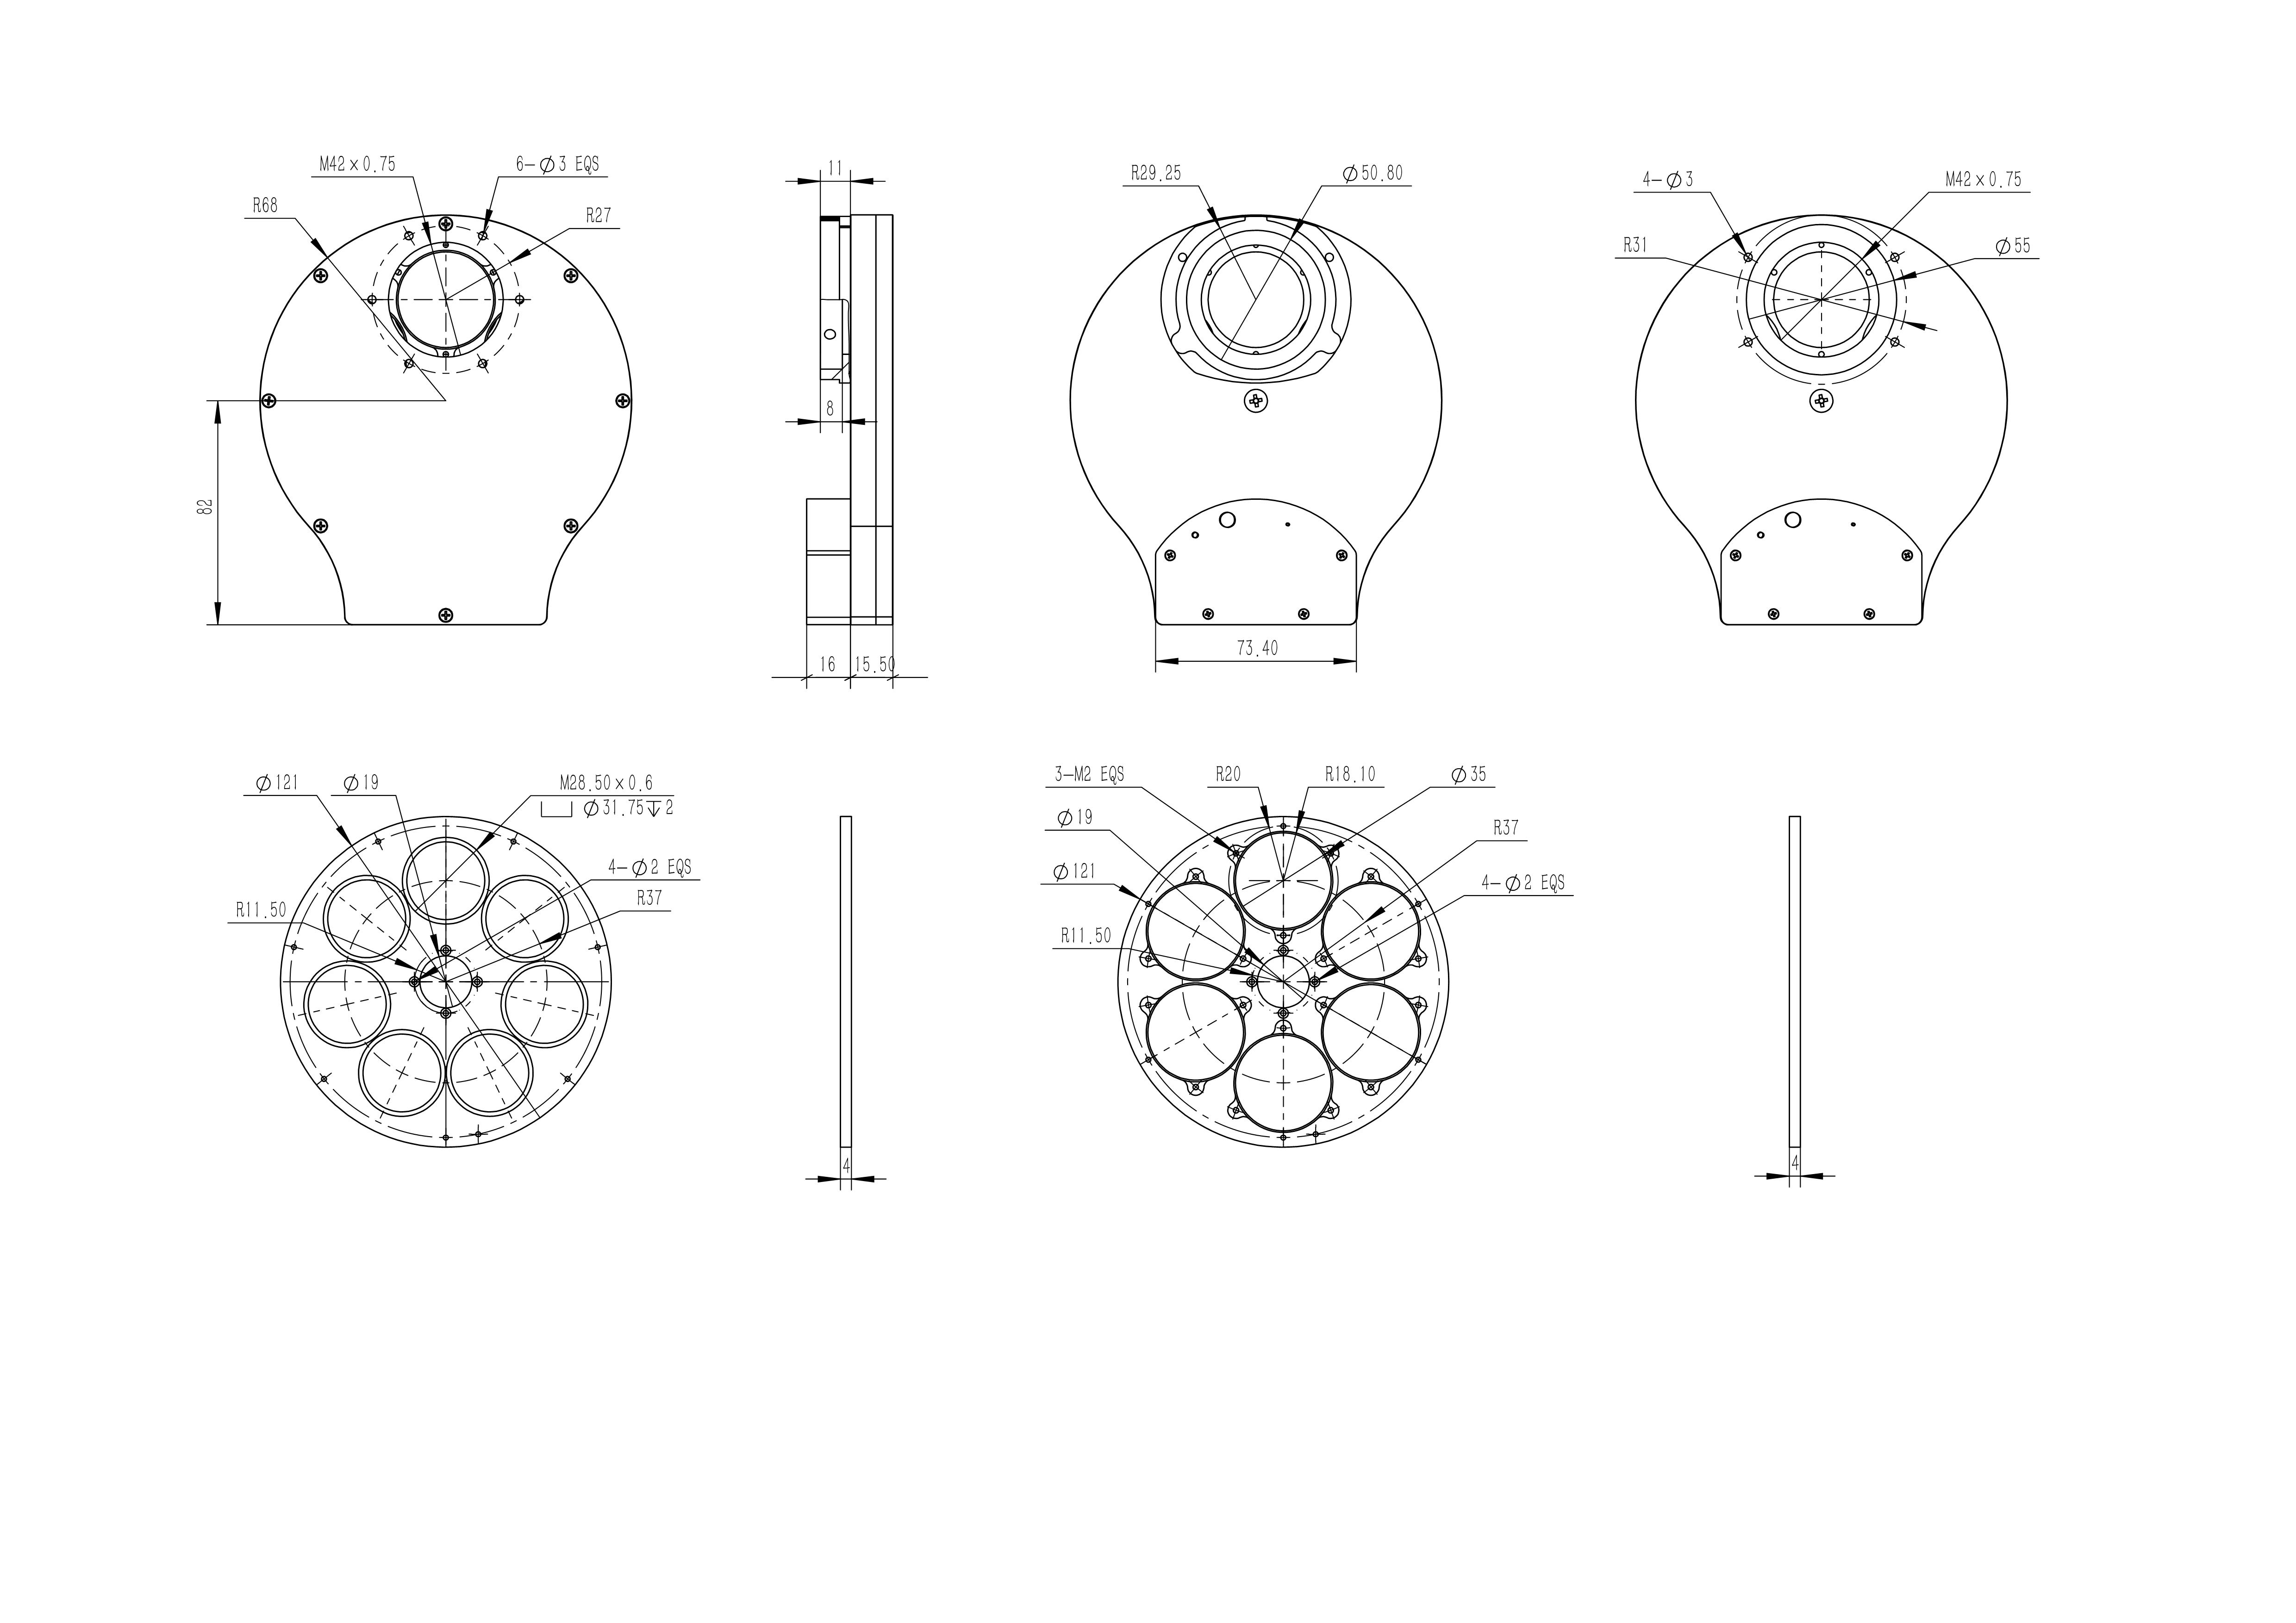 QHY CFW3 Technical Drawing